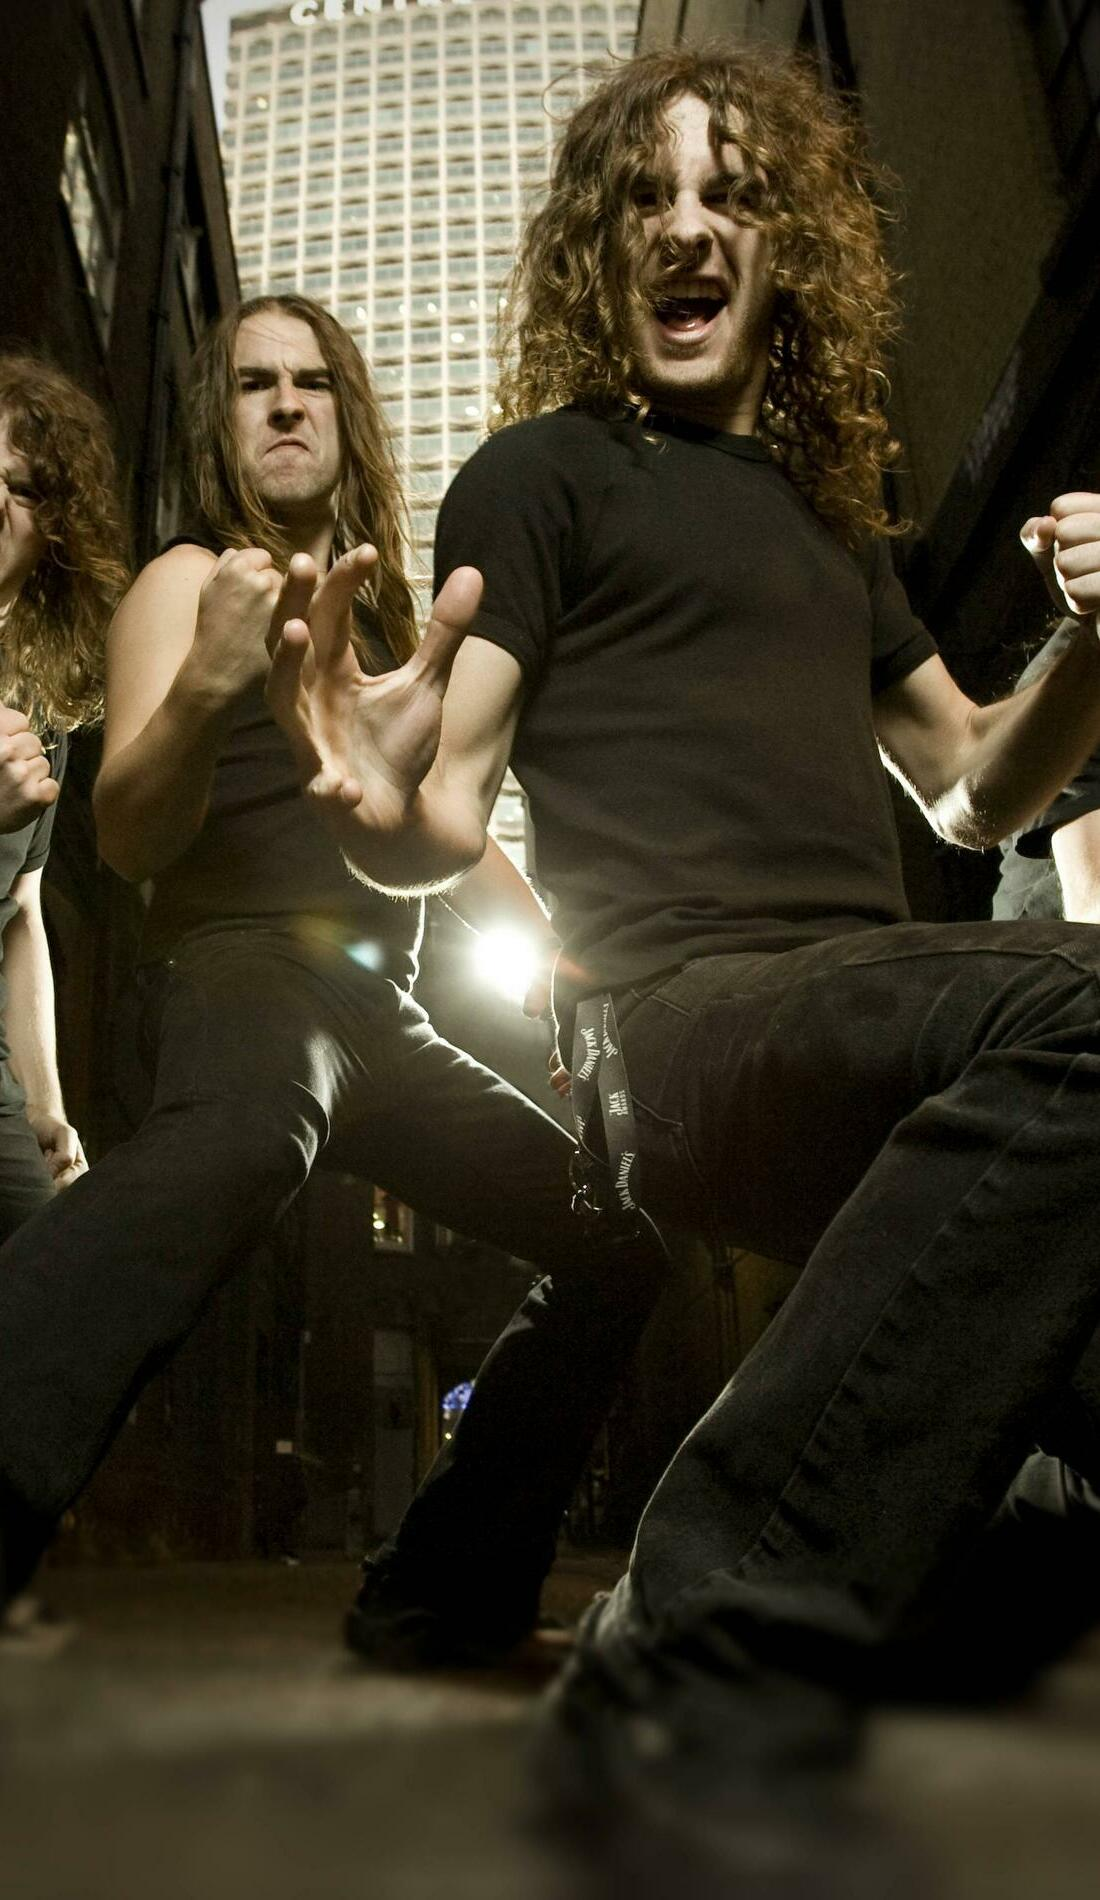 A Airbourne live event